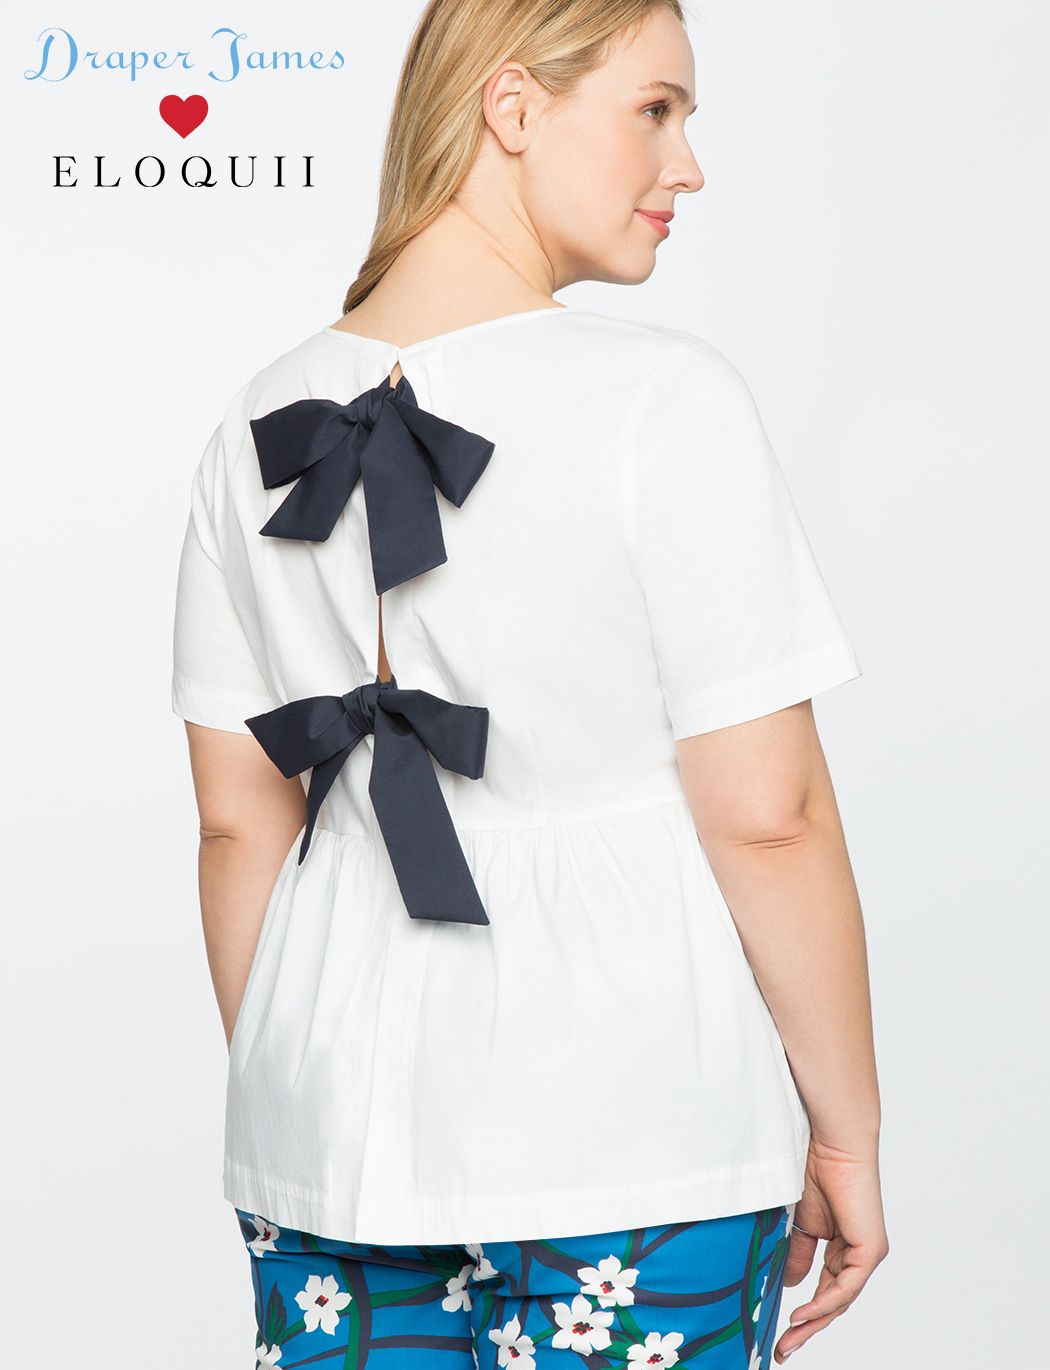 82bb023939f Draper James for ELOQUII Peplum Top with Bows